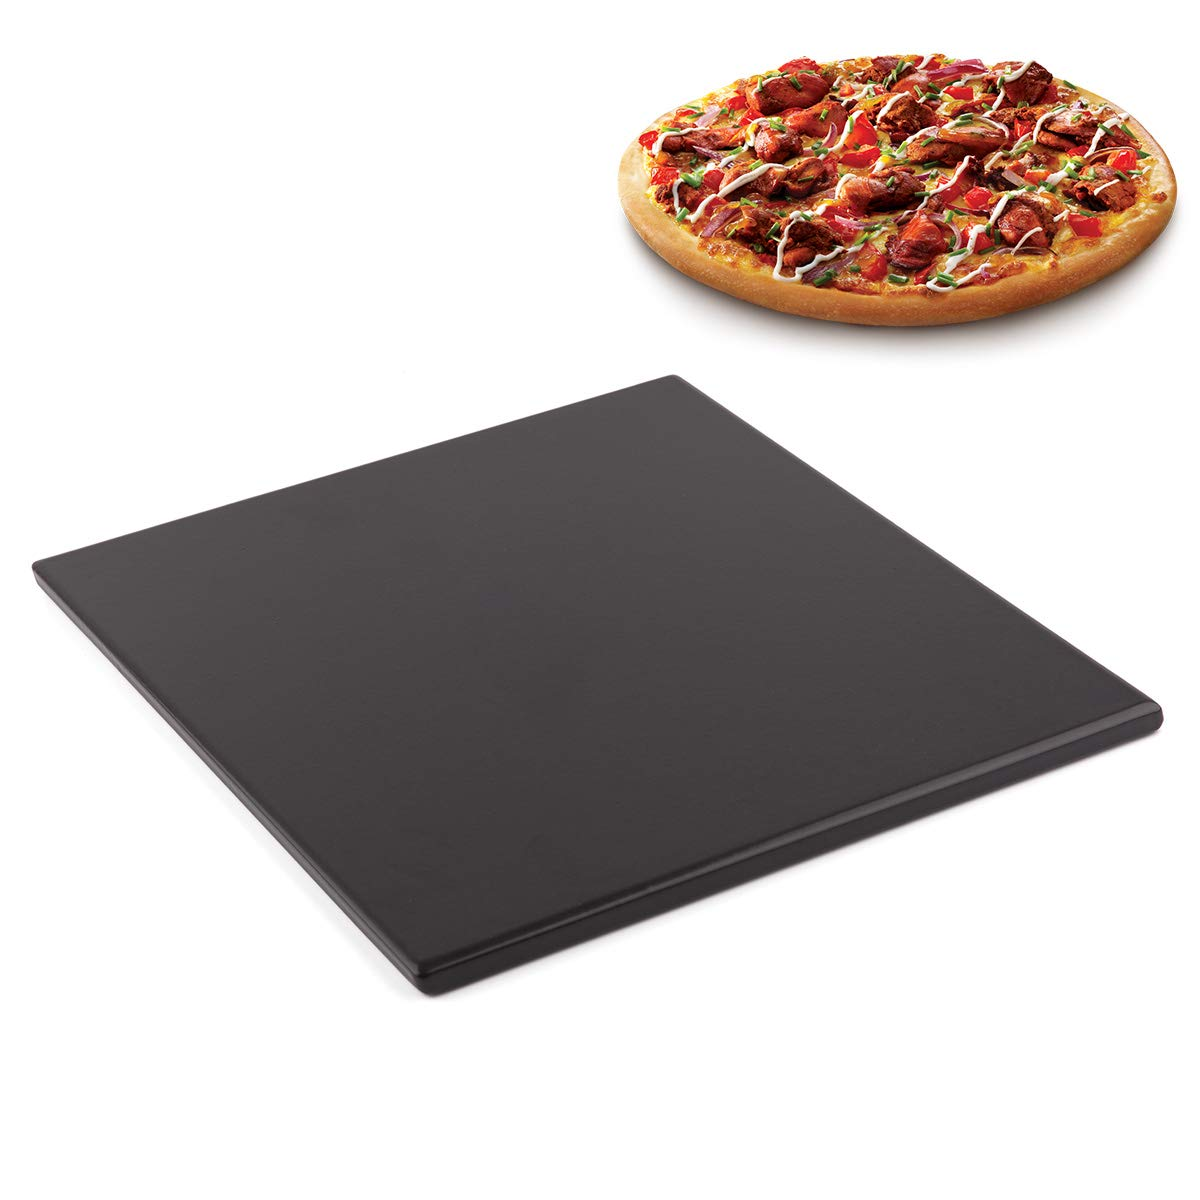 "Waykea 12""x12"" Black Ceramic Pizza Stone Baking Grilling Stone for BBQ Grill Oven RV Oven"